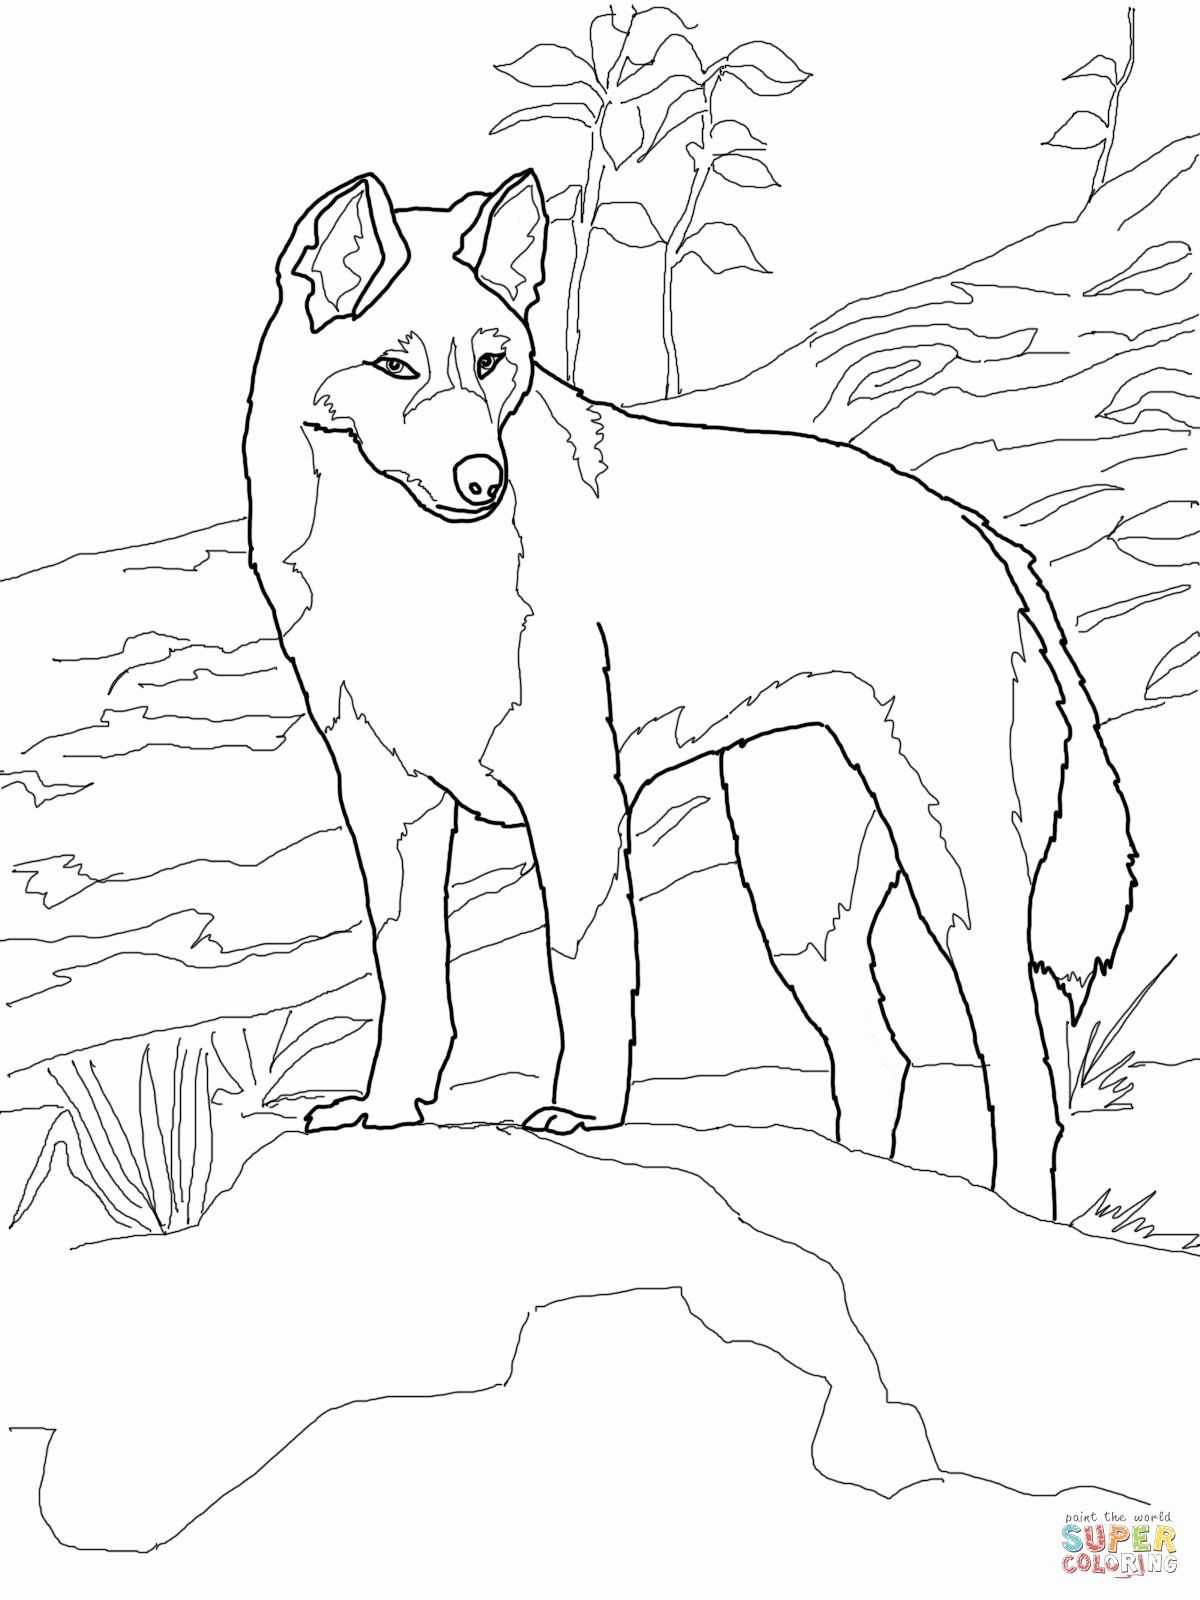 Animals Of Australia Coloring Pages In 2020 With Images Dog